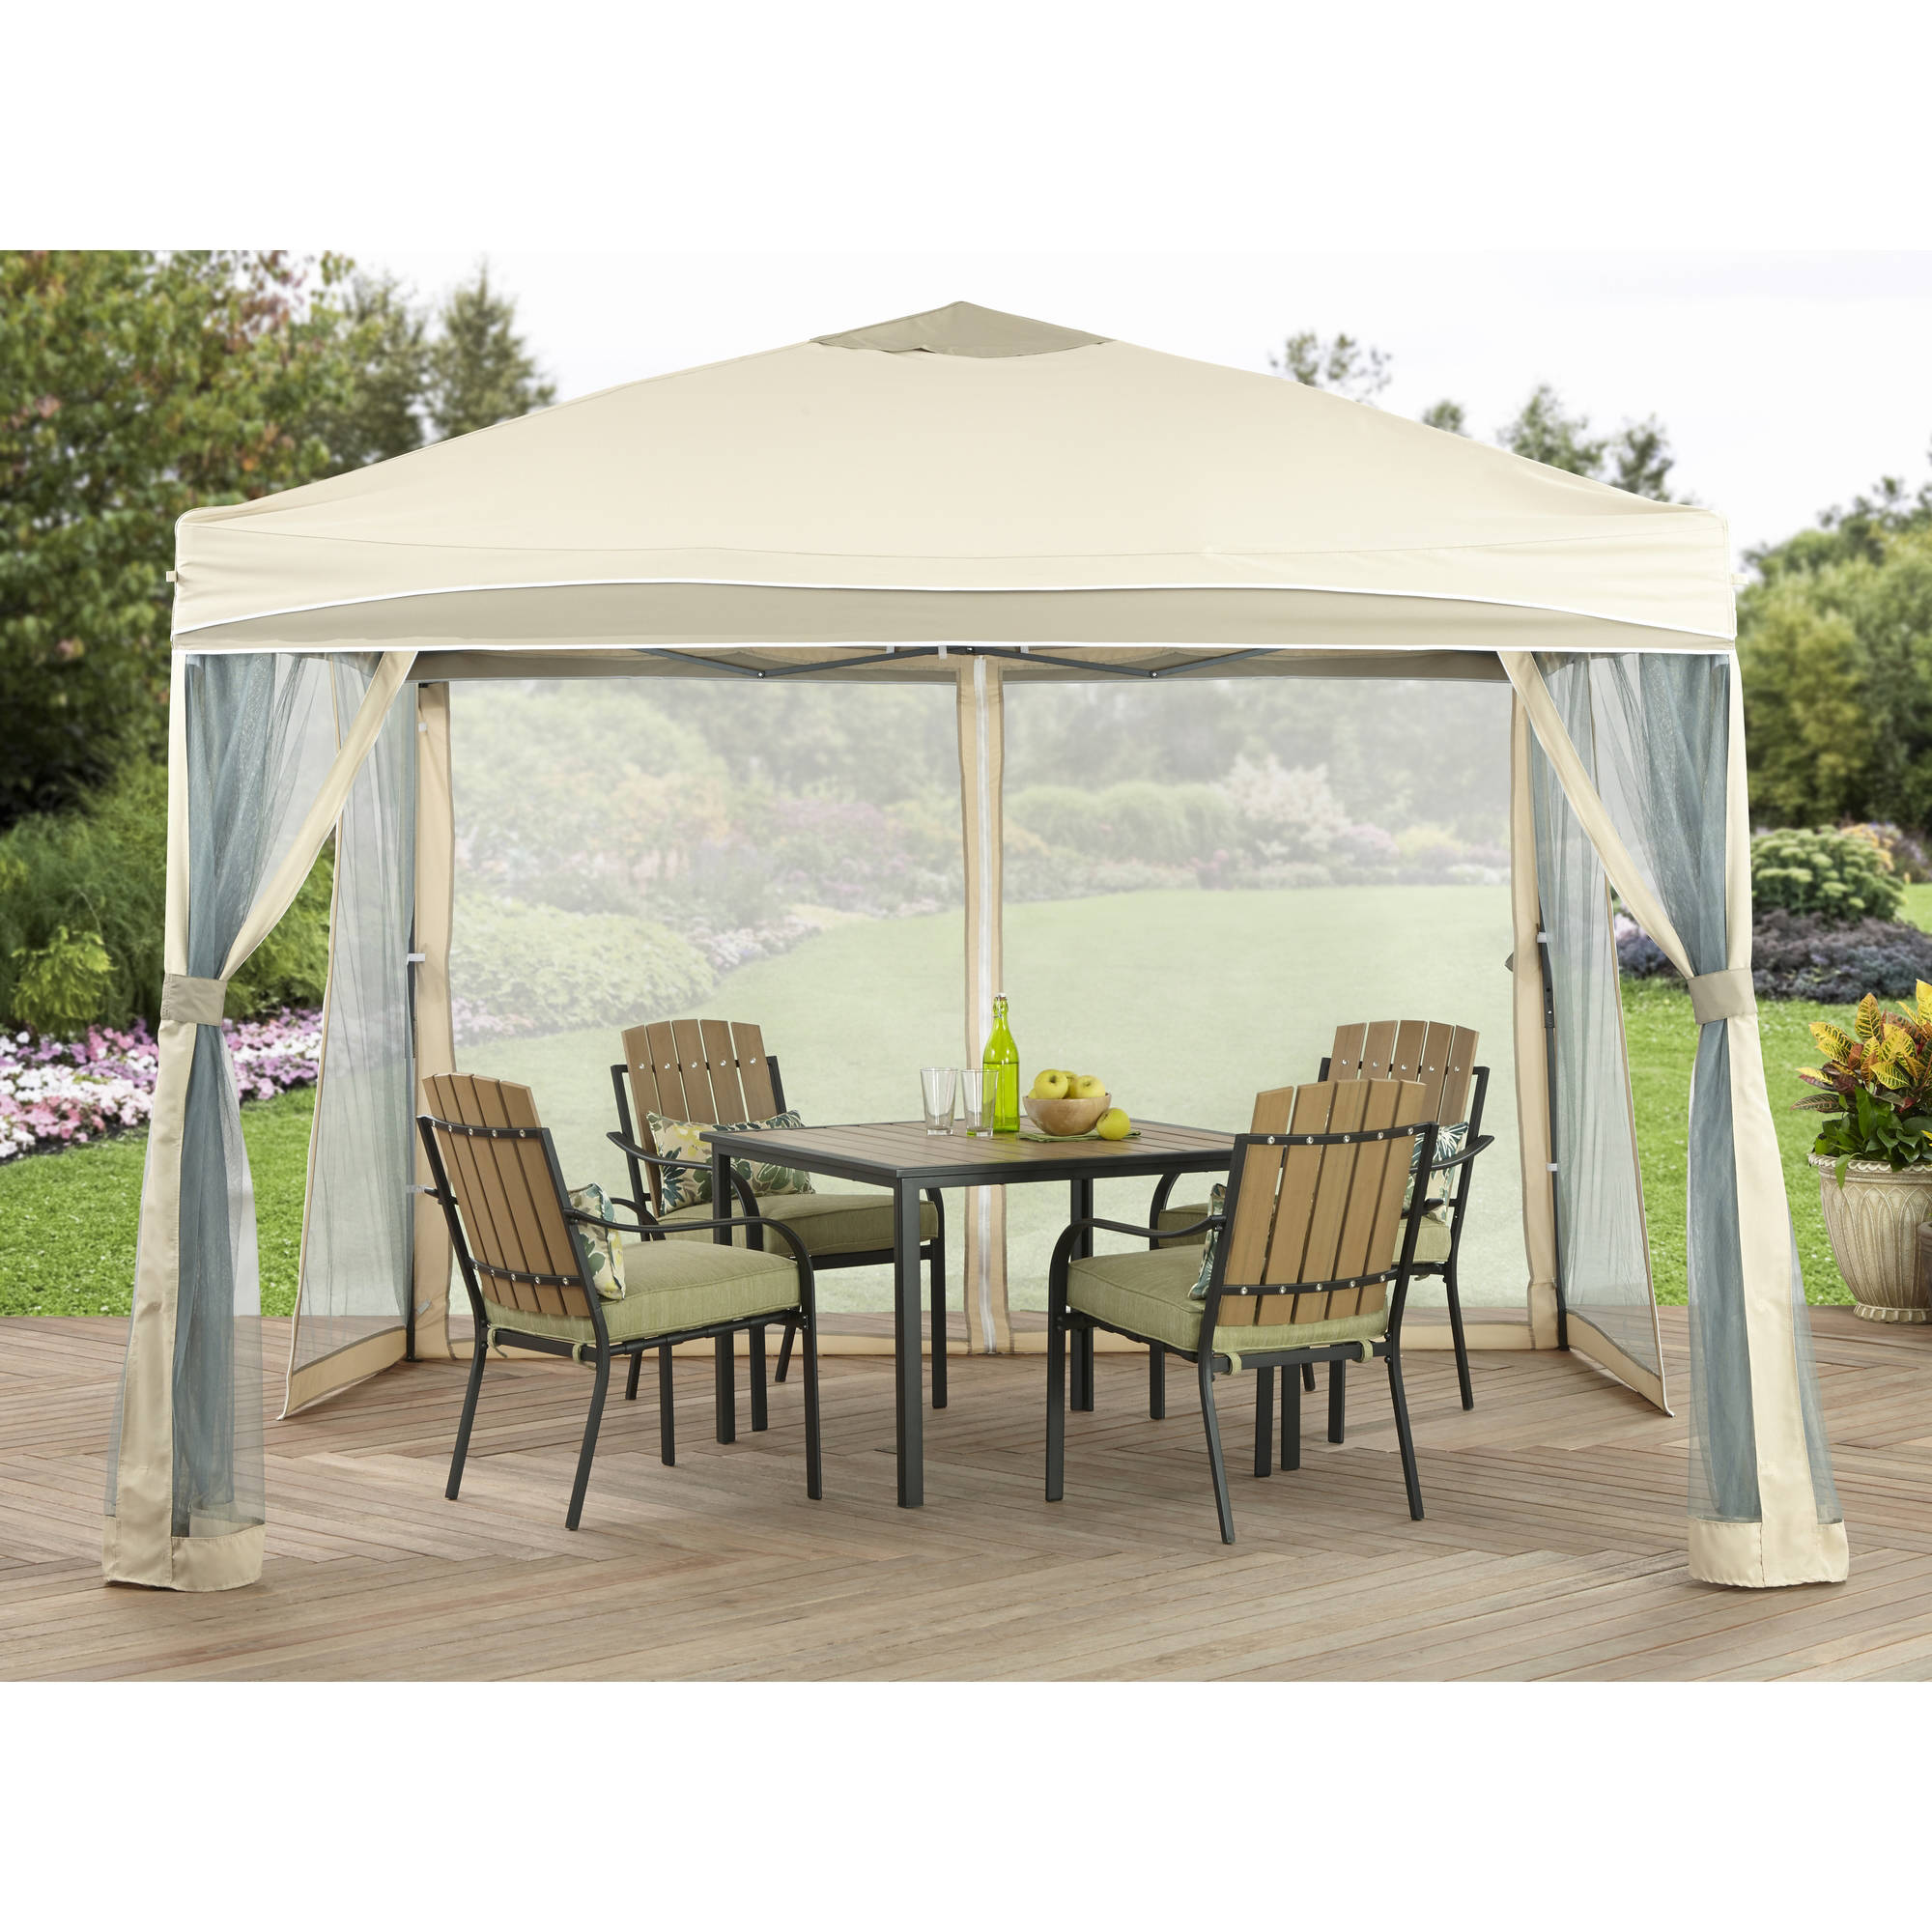 Better Homes And Gardens 10u0027 X 10u0027 Lawrence Portable Patio Gazebo